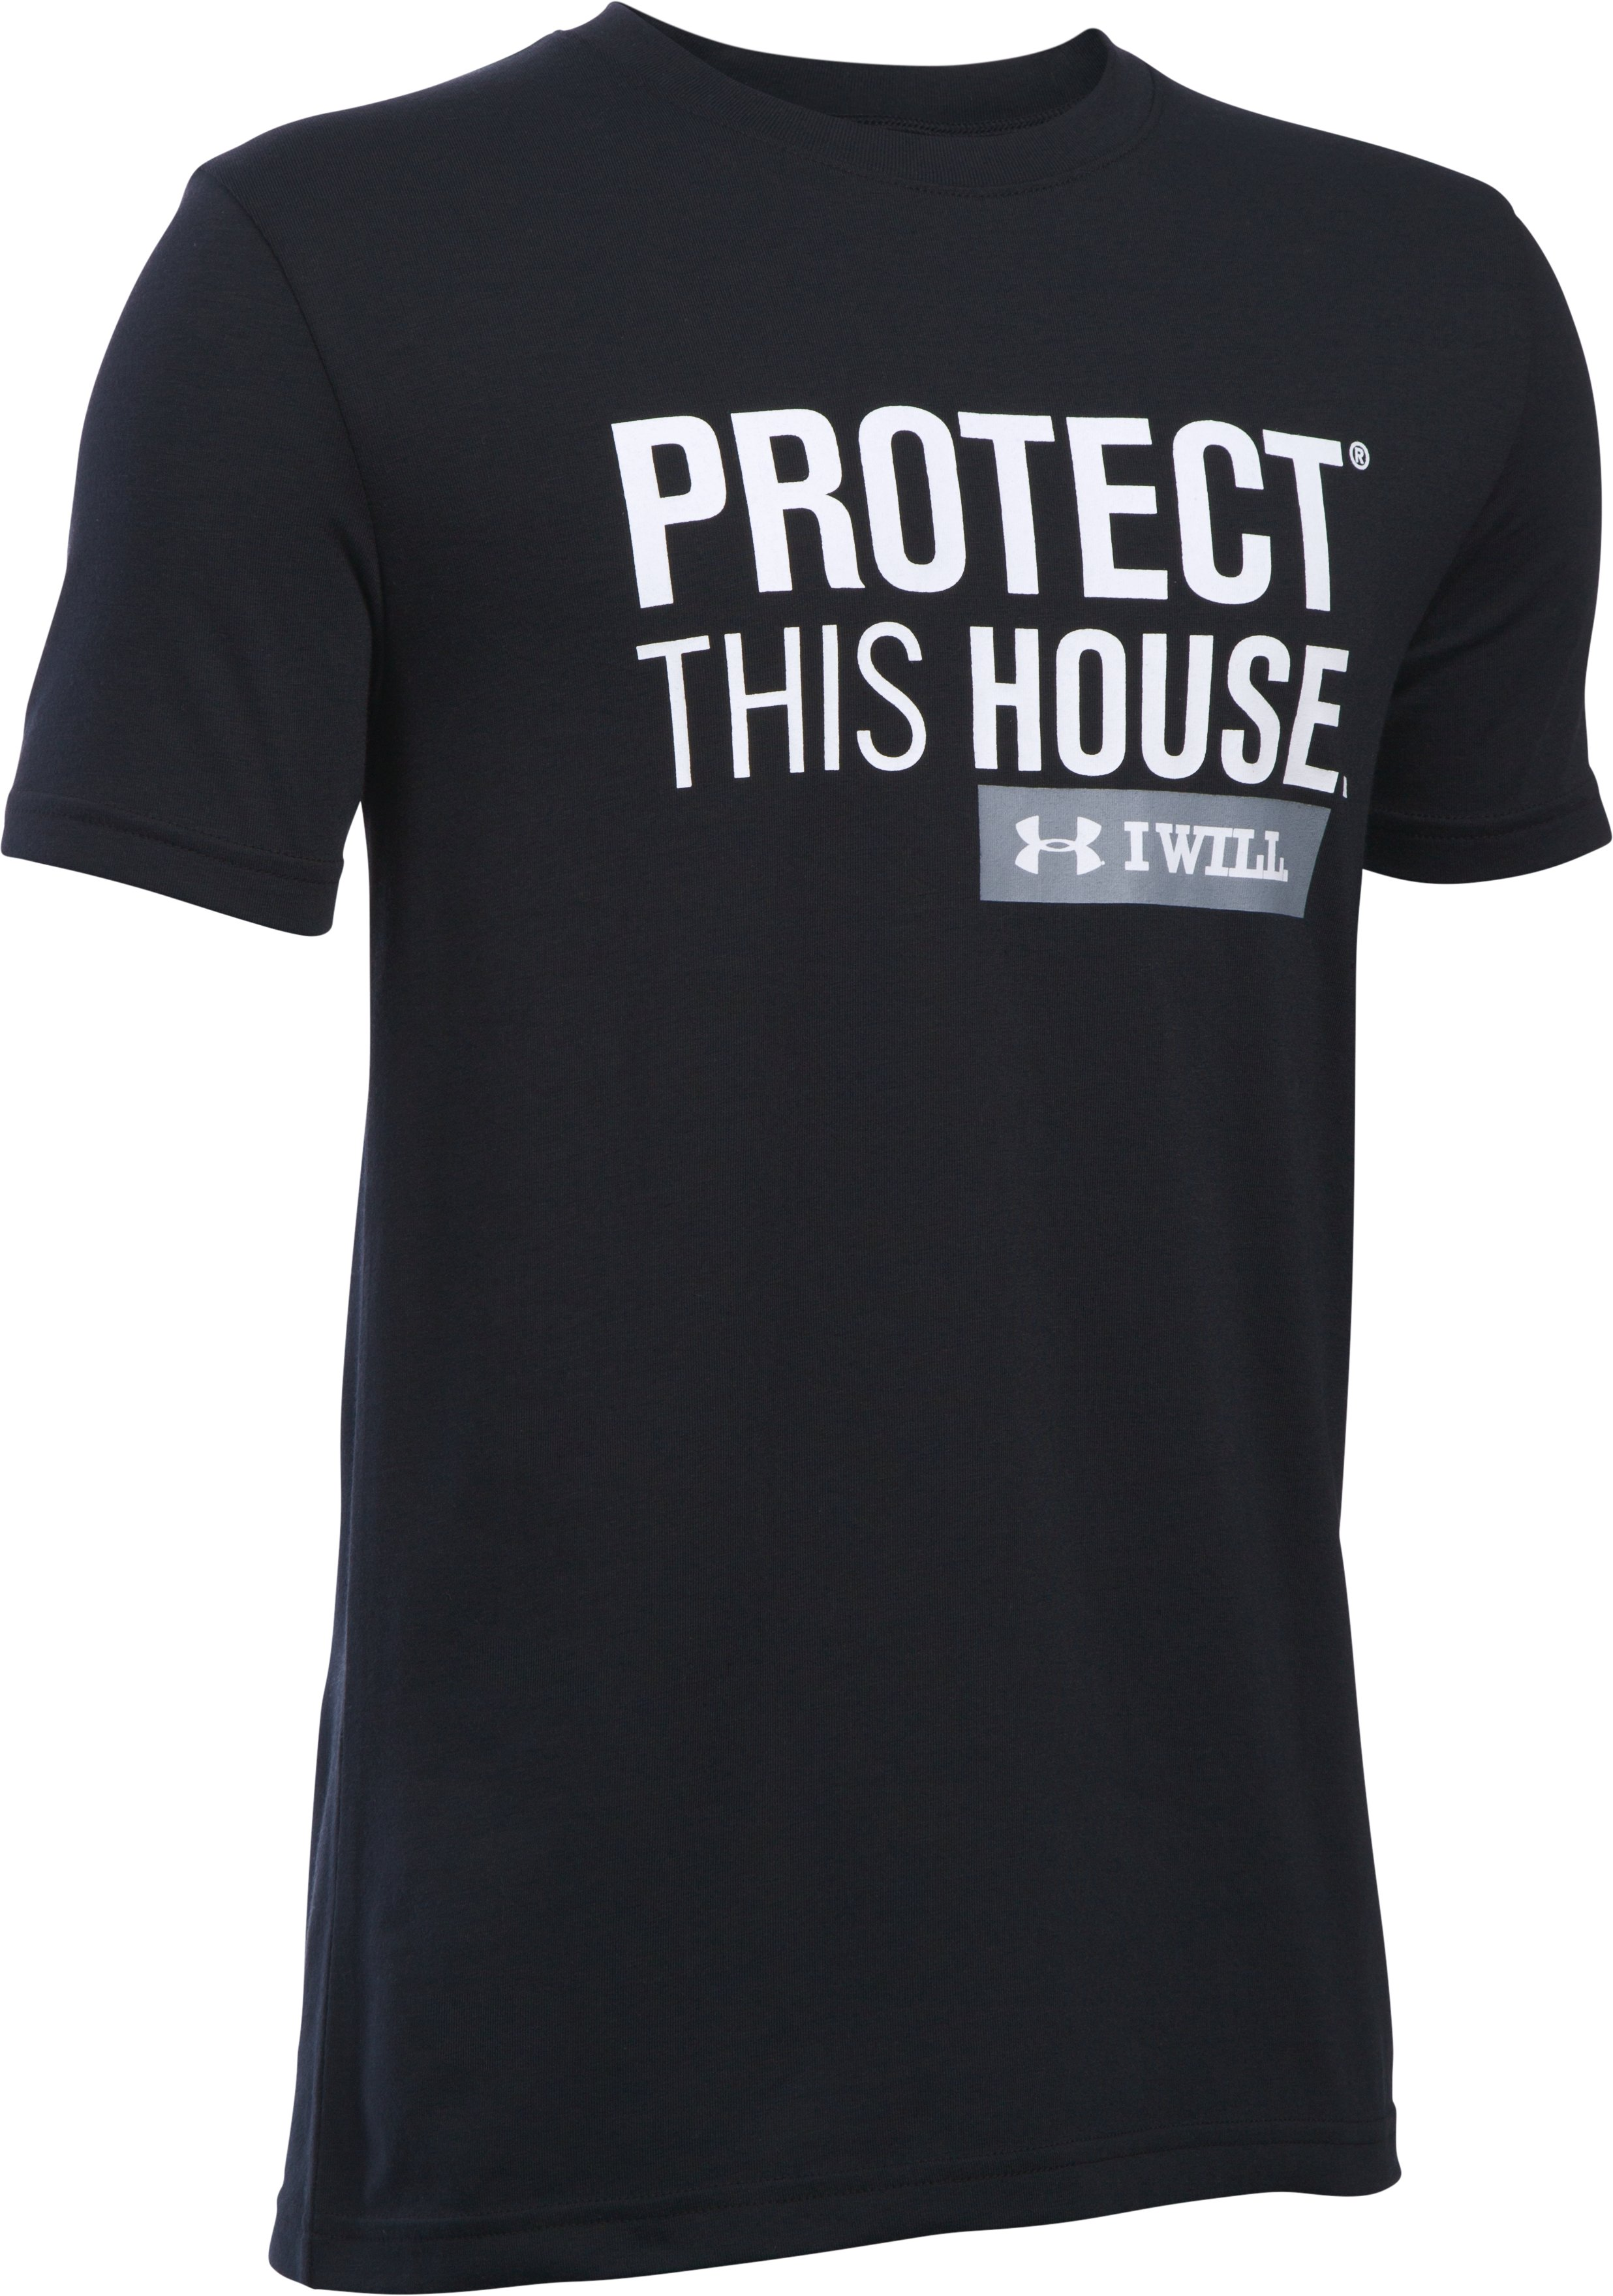 Boys' UA Protect This House Short Sleeve T-Shirt, Black , zoomed image